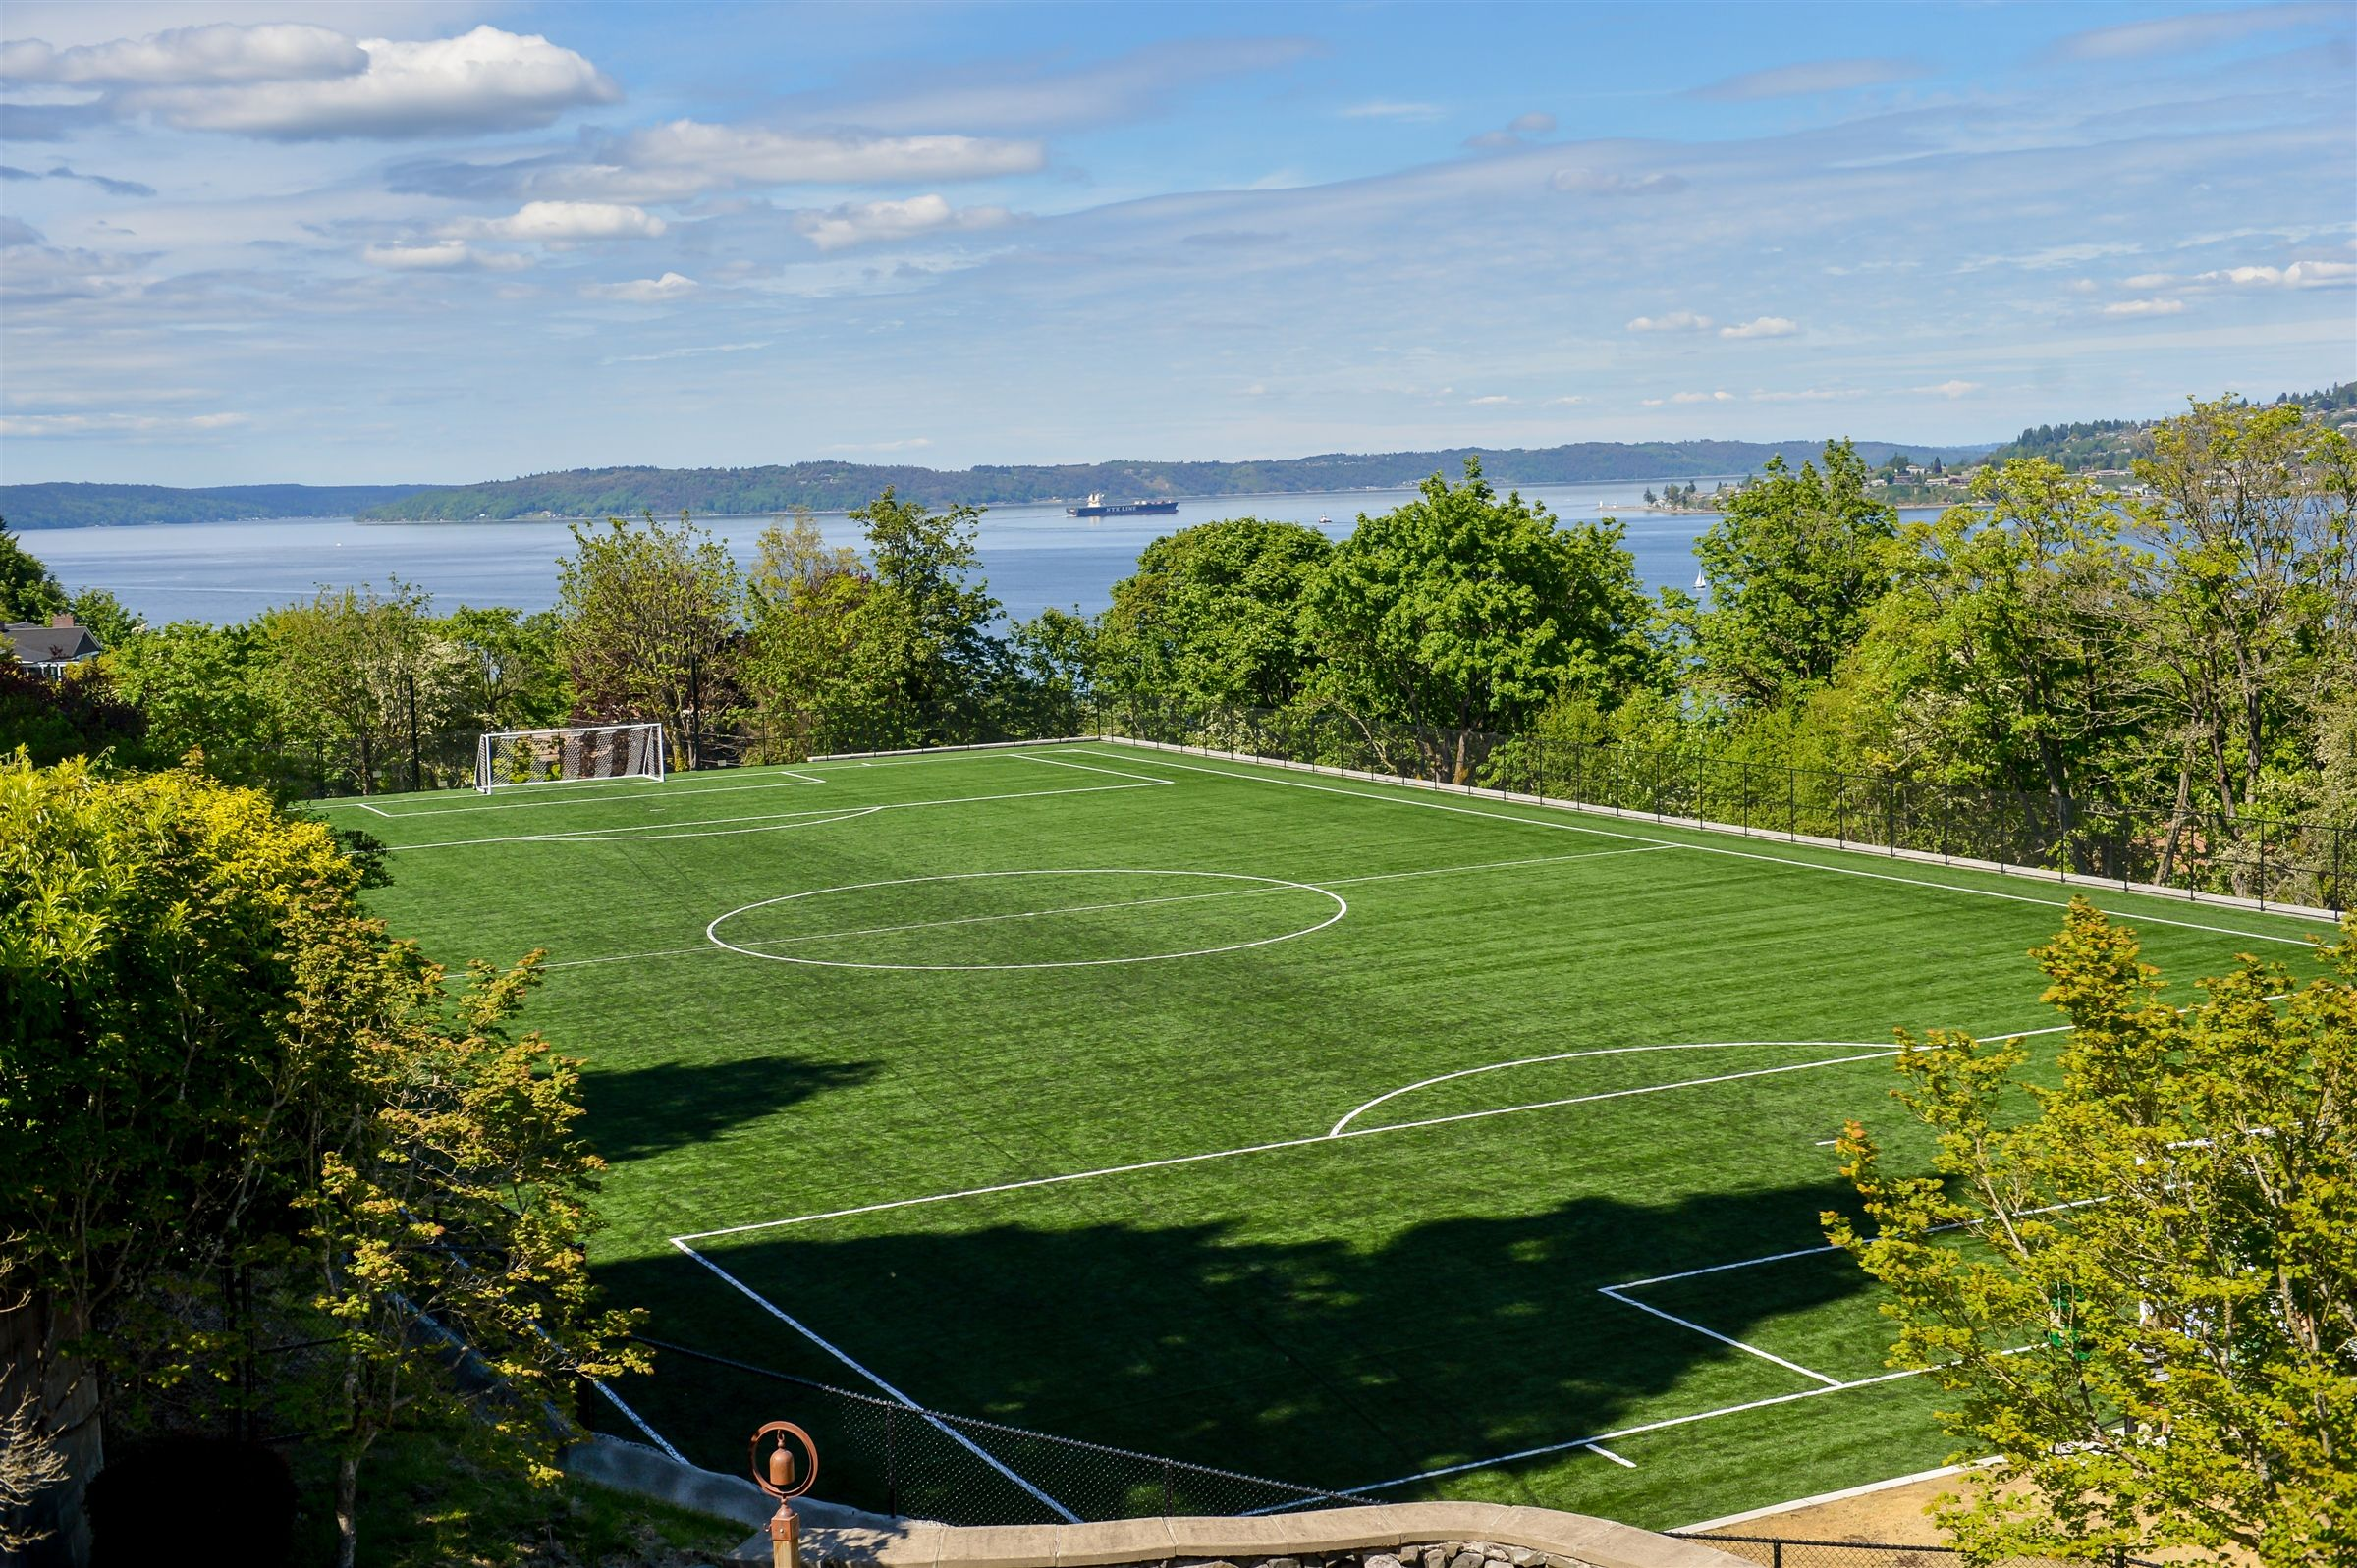 The all-weather James Memorial Field overlooking the Puget Sound was completed in 2017.